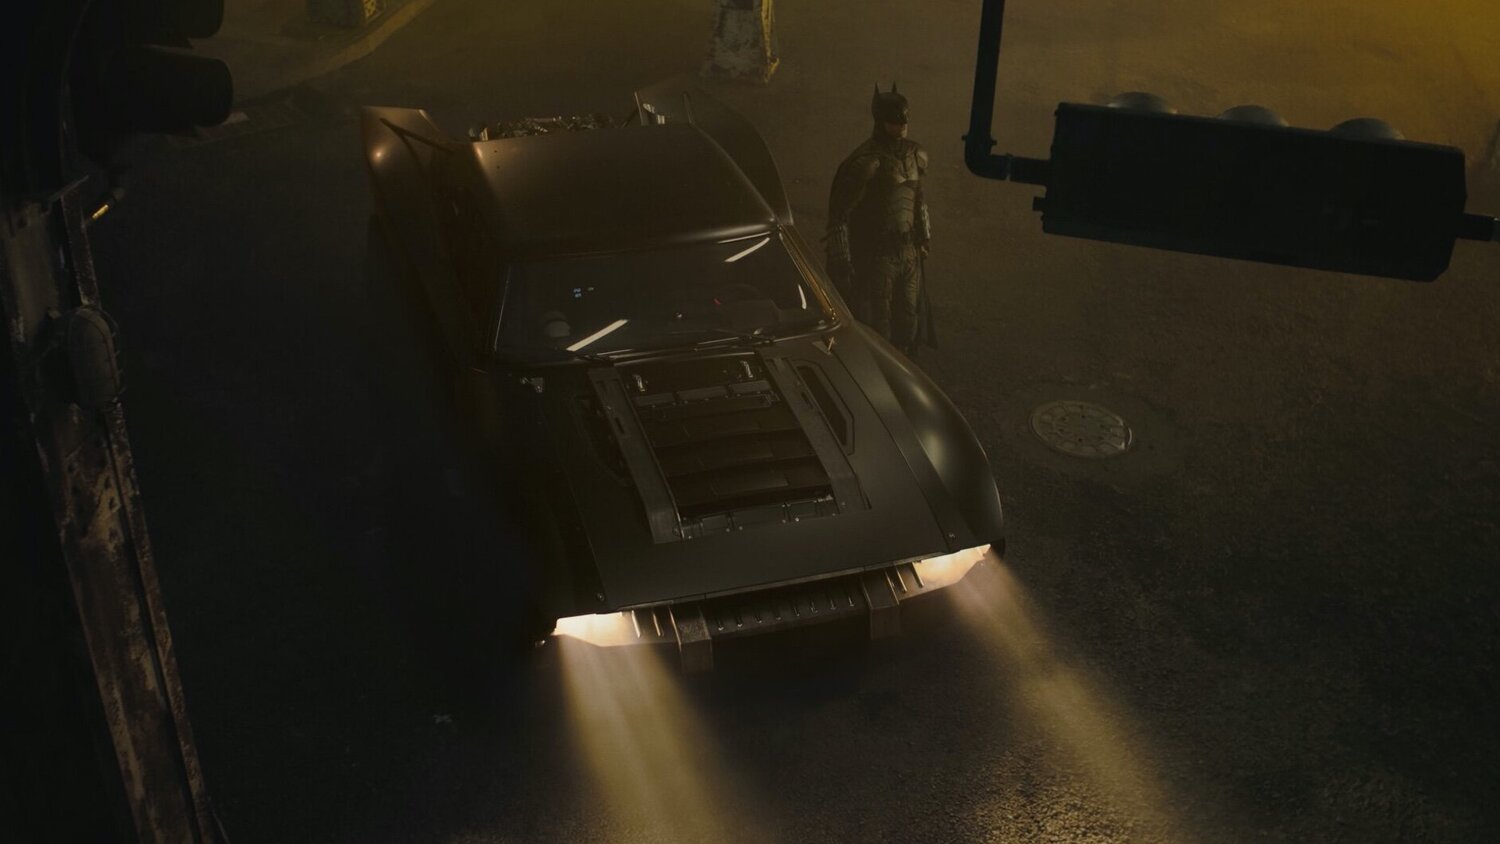 Cool Concept Model of The Batmobile From THE BATMAN Shared Online